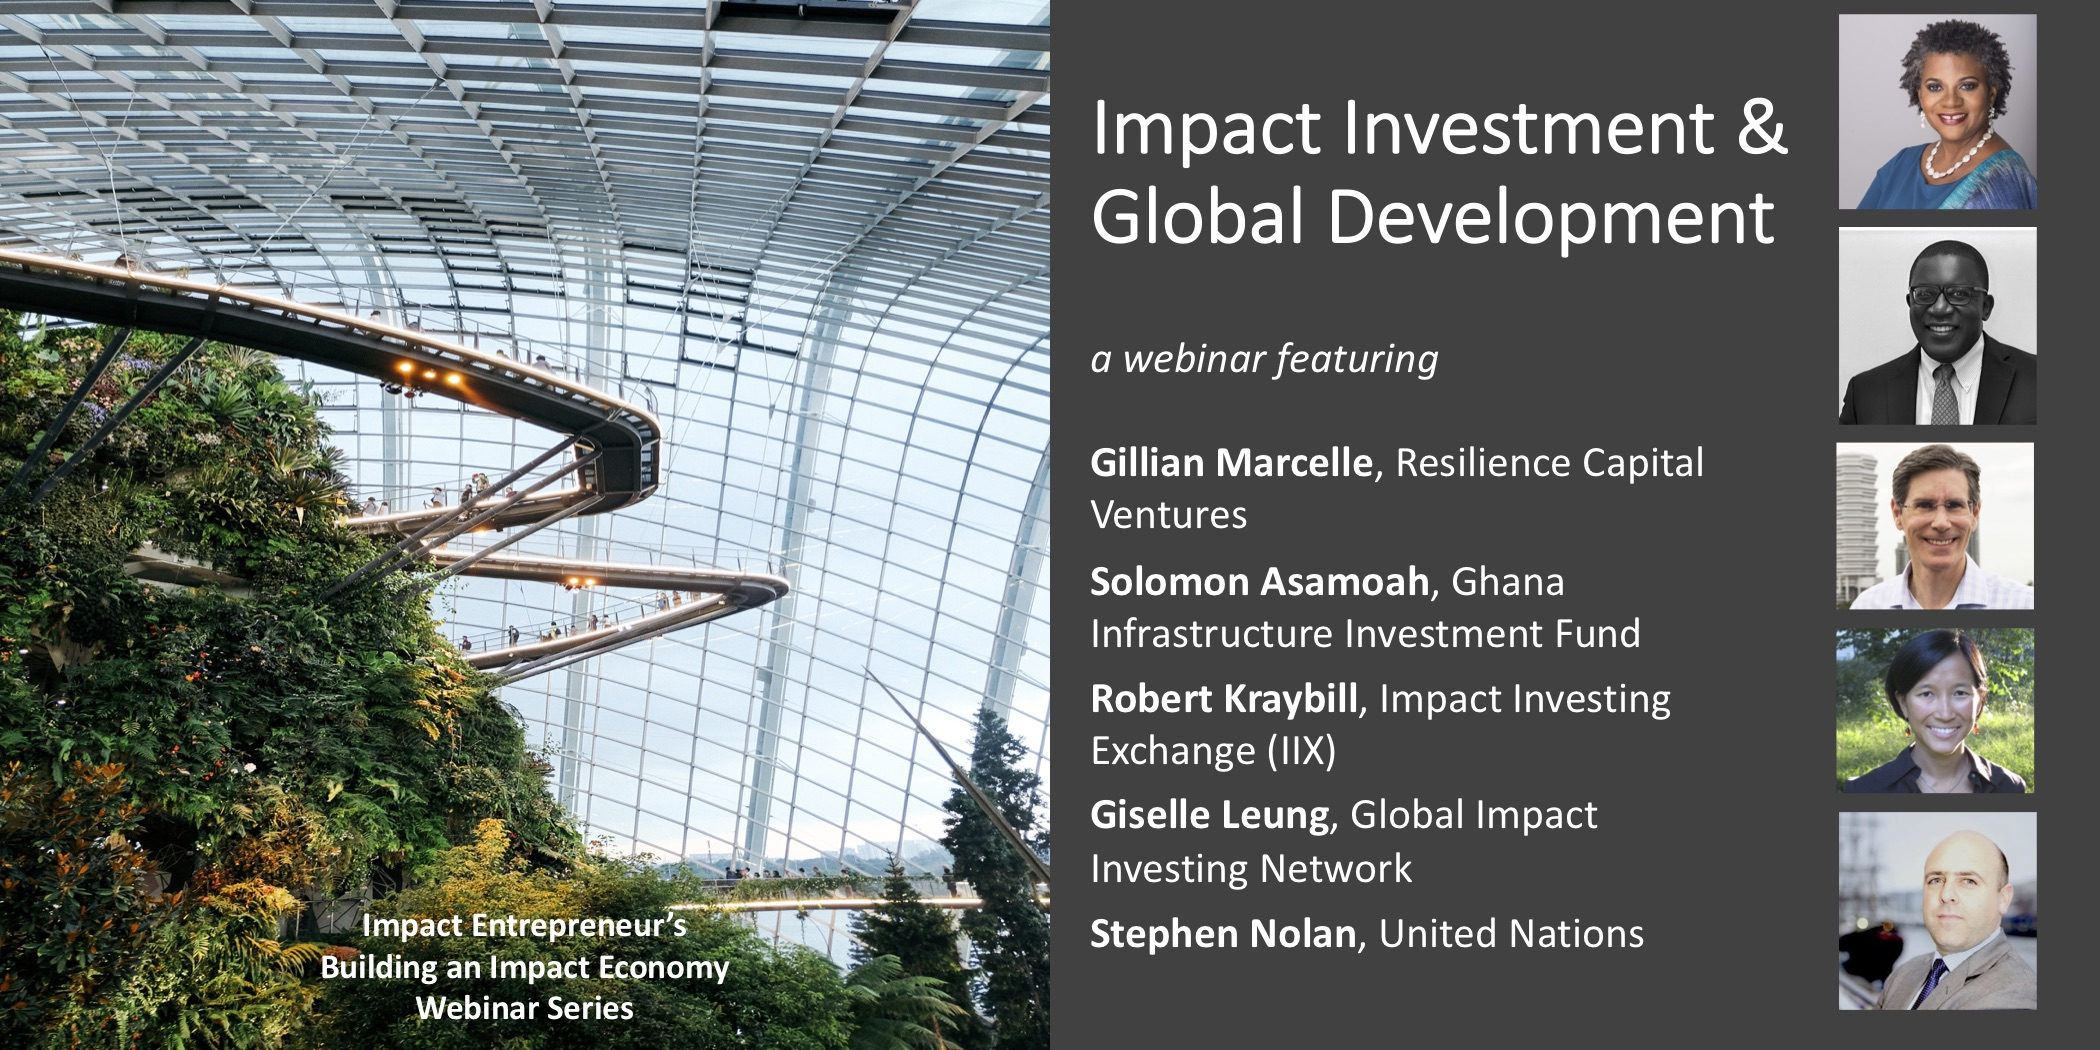 Impact Investment and Global Development Lead Image.jpg